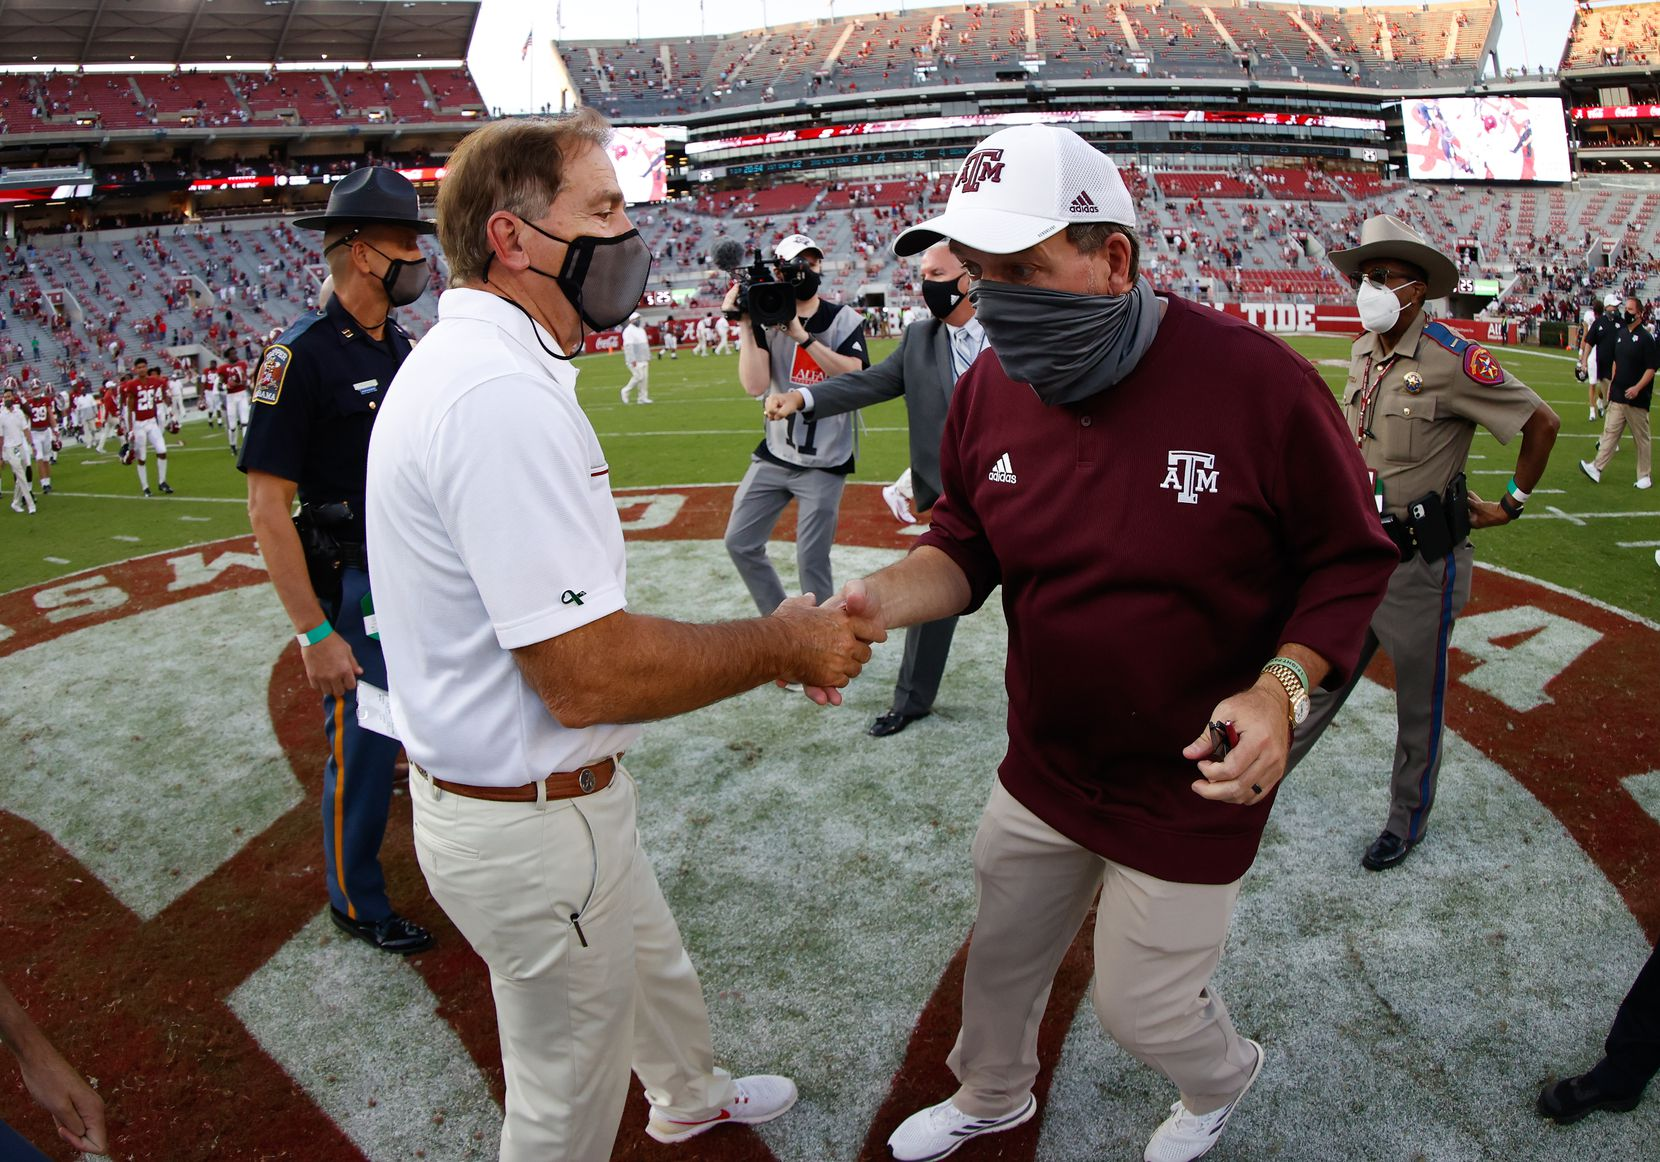 TUSCALOOSA, AL - OCTOBER 3: Nick Saban of the Alabama Crimson Tide shakes hands with Jimbo Fisher of the Texas A&M Aggies after the game on October 3, 2020 at Bryant-Denny Stadium in Tuscaloosa, Alabama. (Photo by UA Athletics/Collegiate Images/Getty Images)